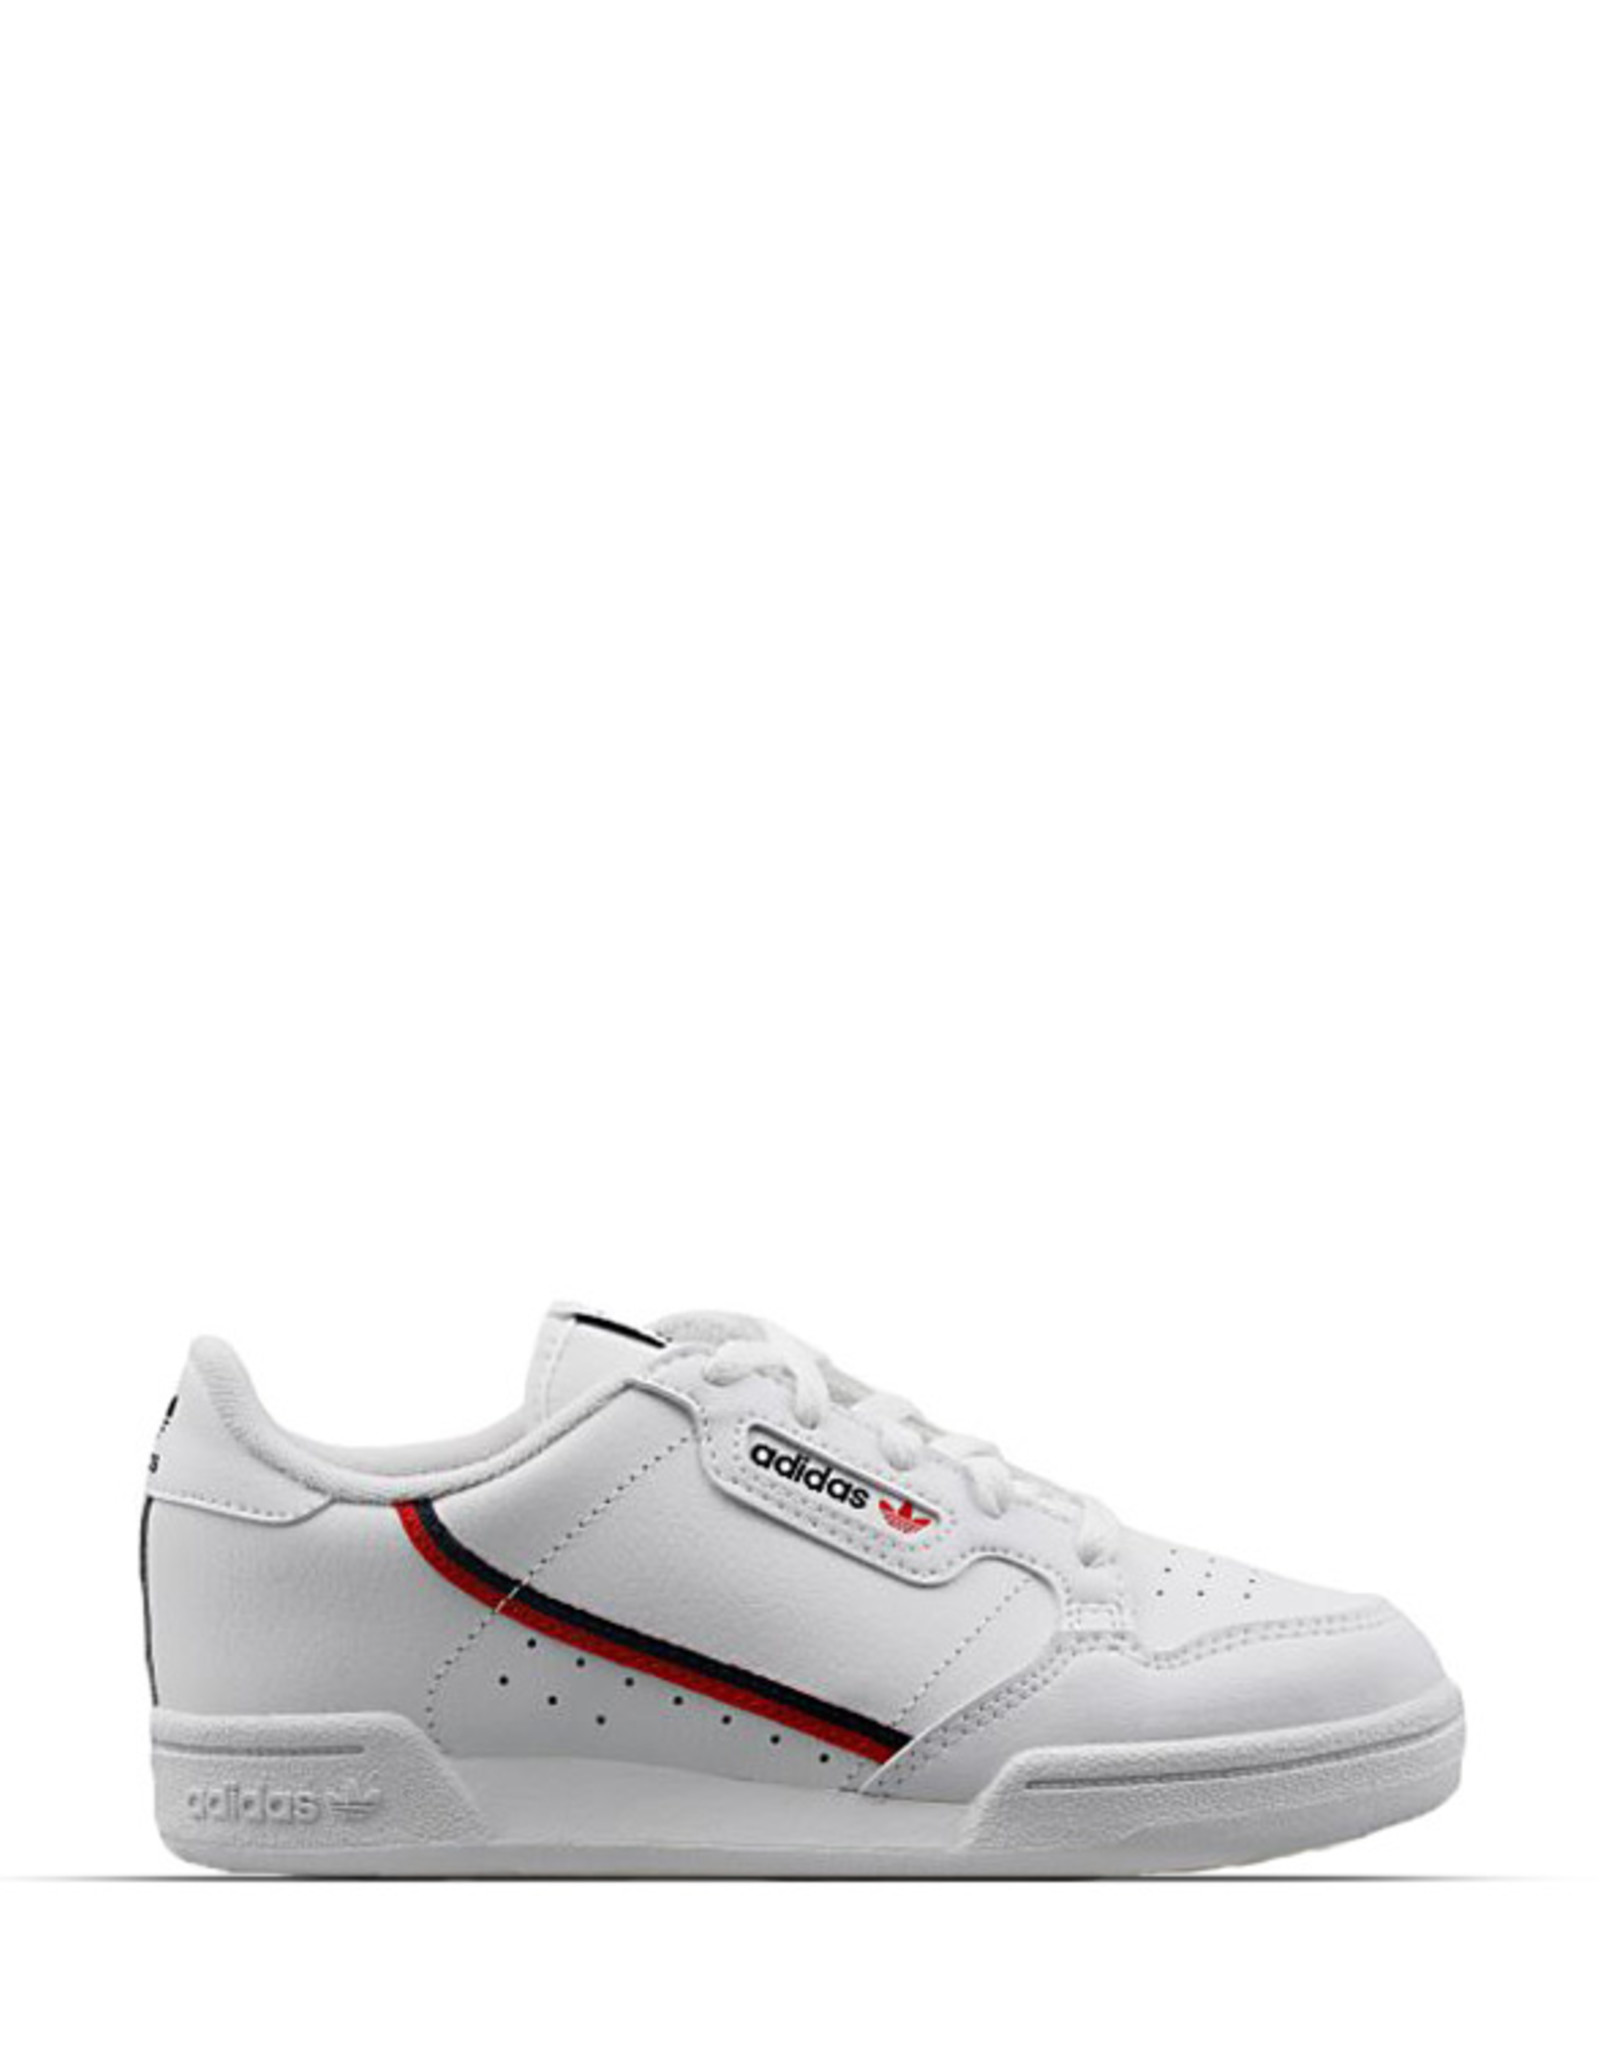 ADIDAS CONTINENTAL 80 WHITE SCARLET RED YOUTH